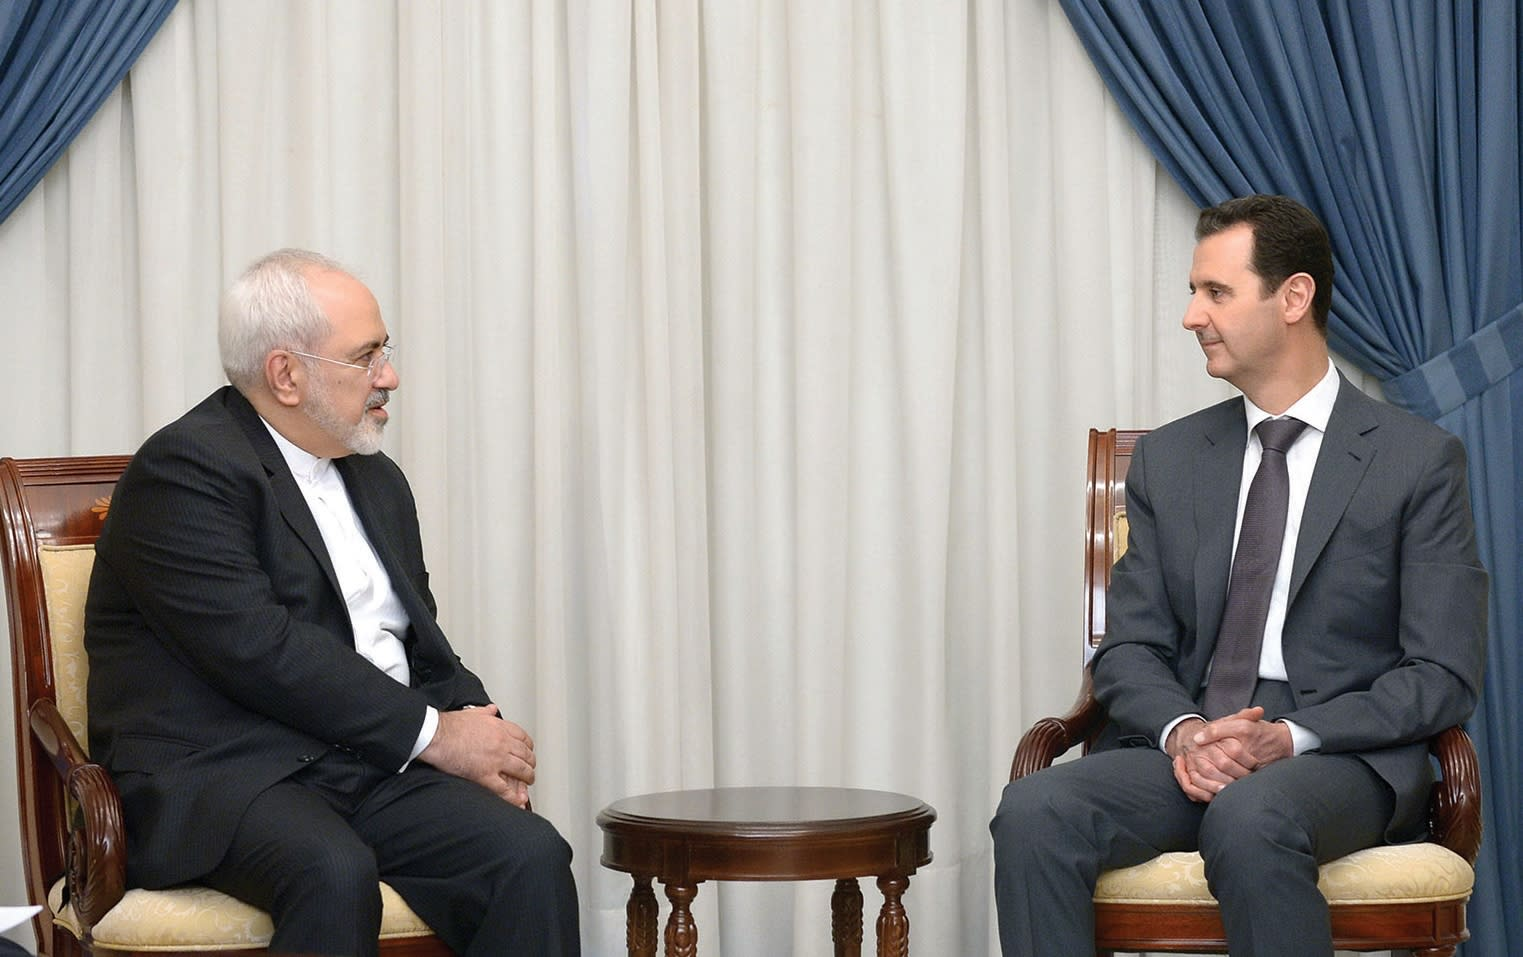 SYRIAN PRESIDENT Bashar Assad meeting with Iranian foreign minister Javad Zarif in 2015 (Reuters)